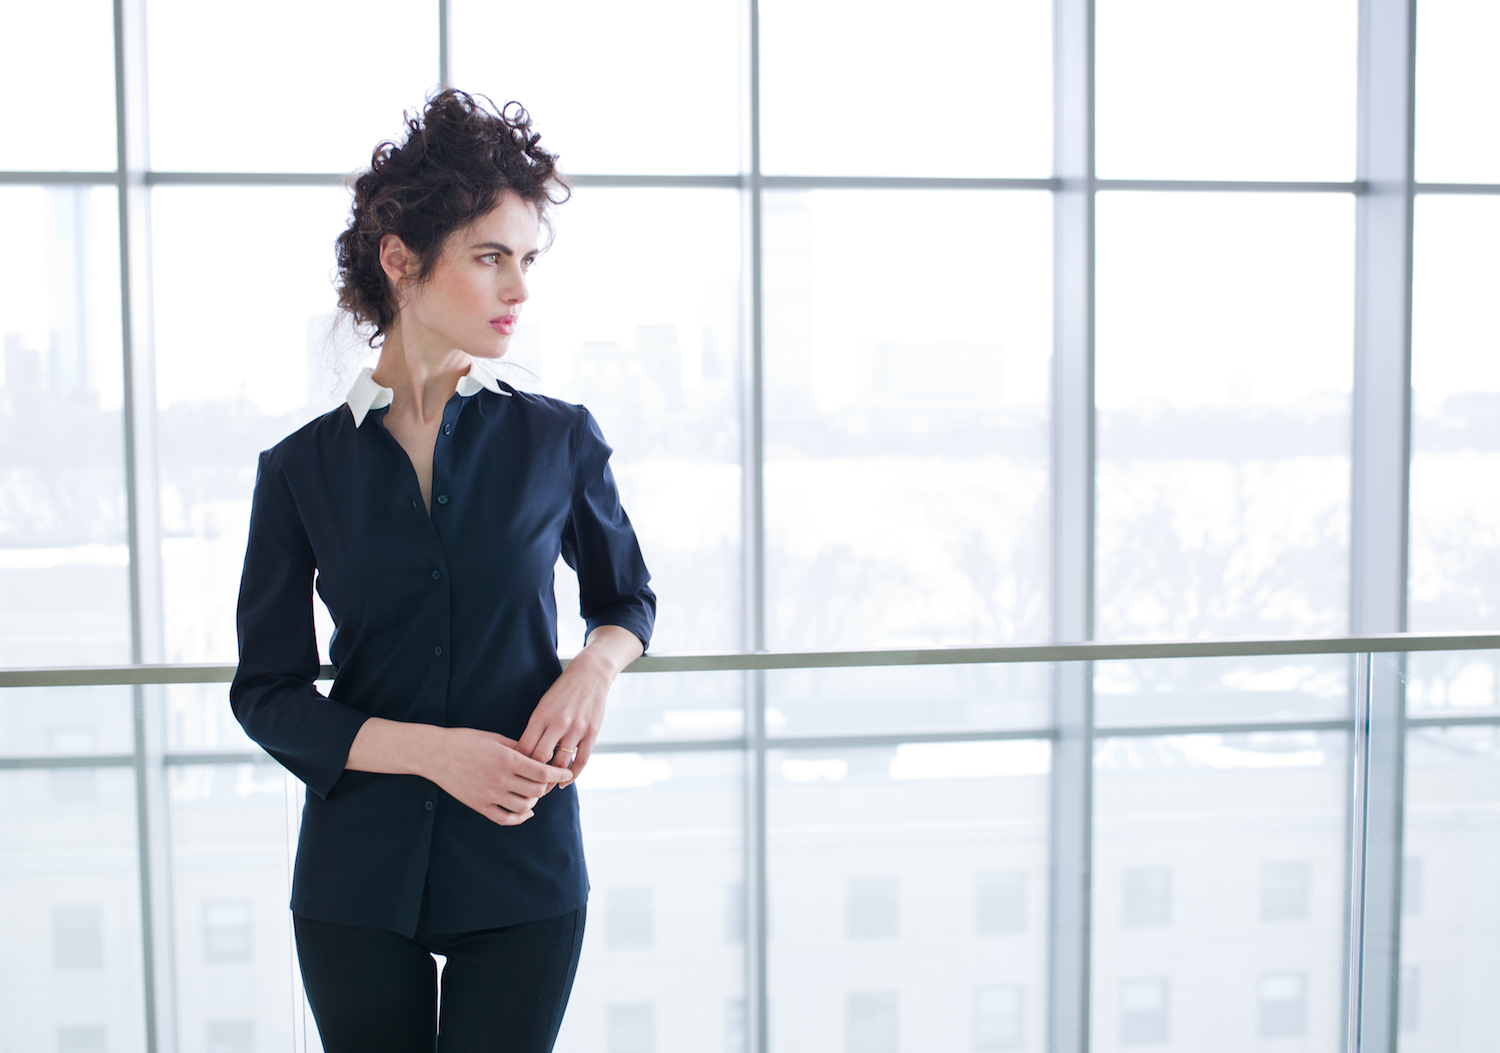 Neri Oxman shot by Conor Dohery